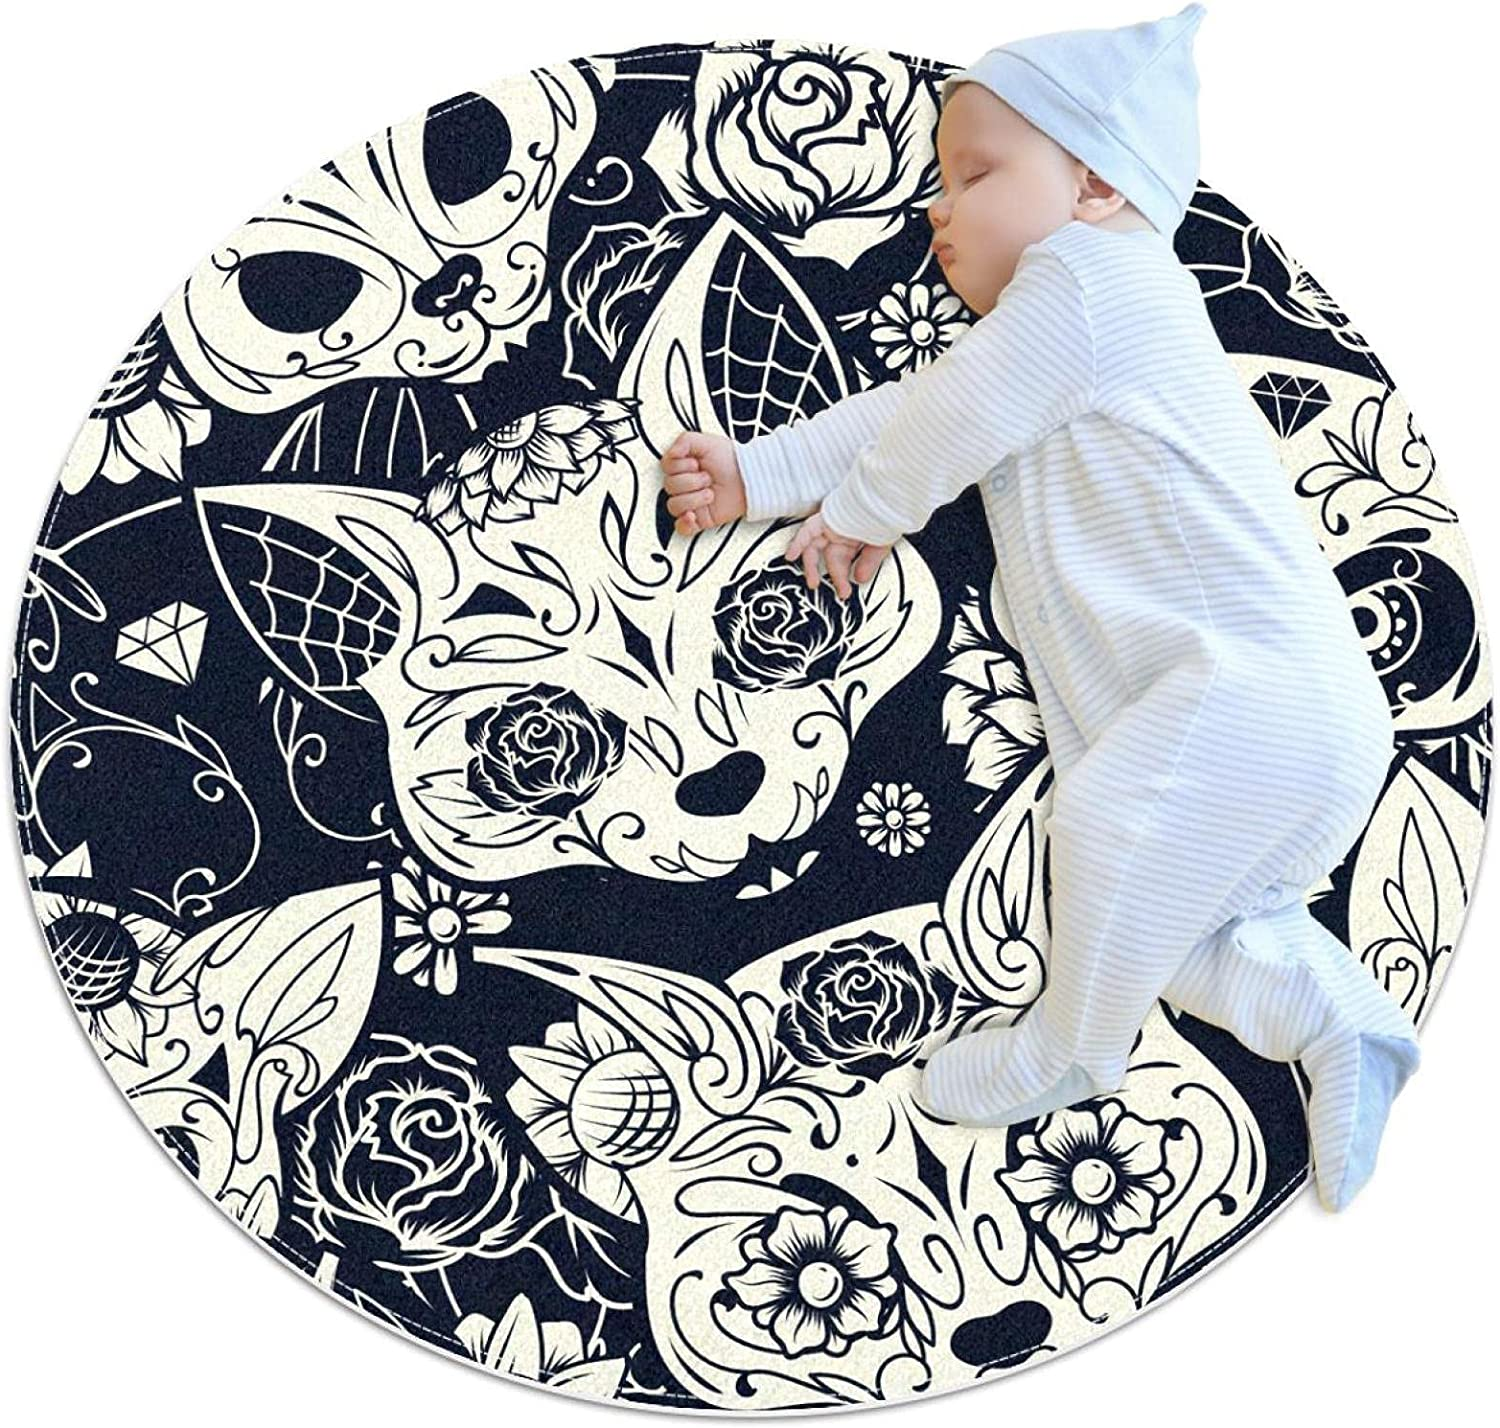 Area Rugs for Bedroom, Ultra-Luxurious Soft and Thick Non-Slip Carpet for Kids Baby Room, Nursery Modern Decor Rug 2.3Ft, Sugar Cat Skull with Flower Animal